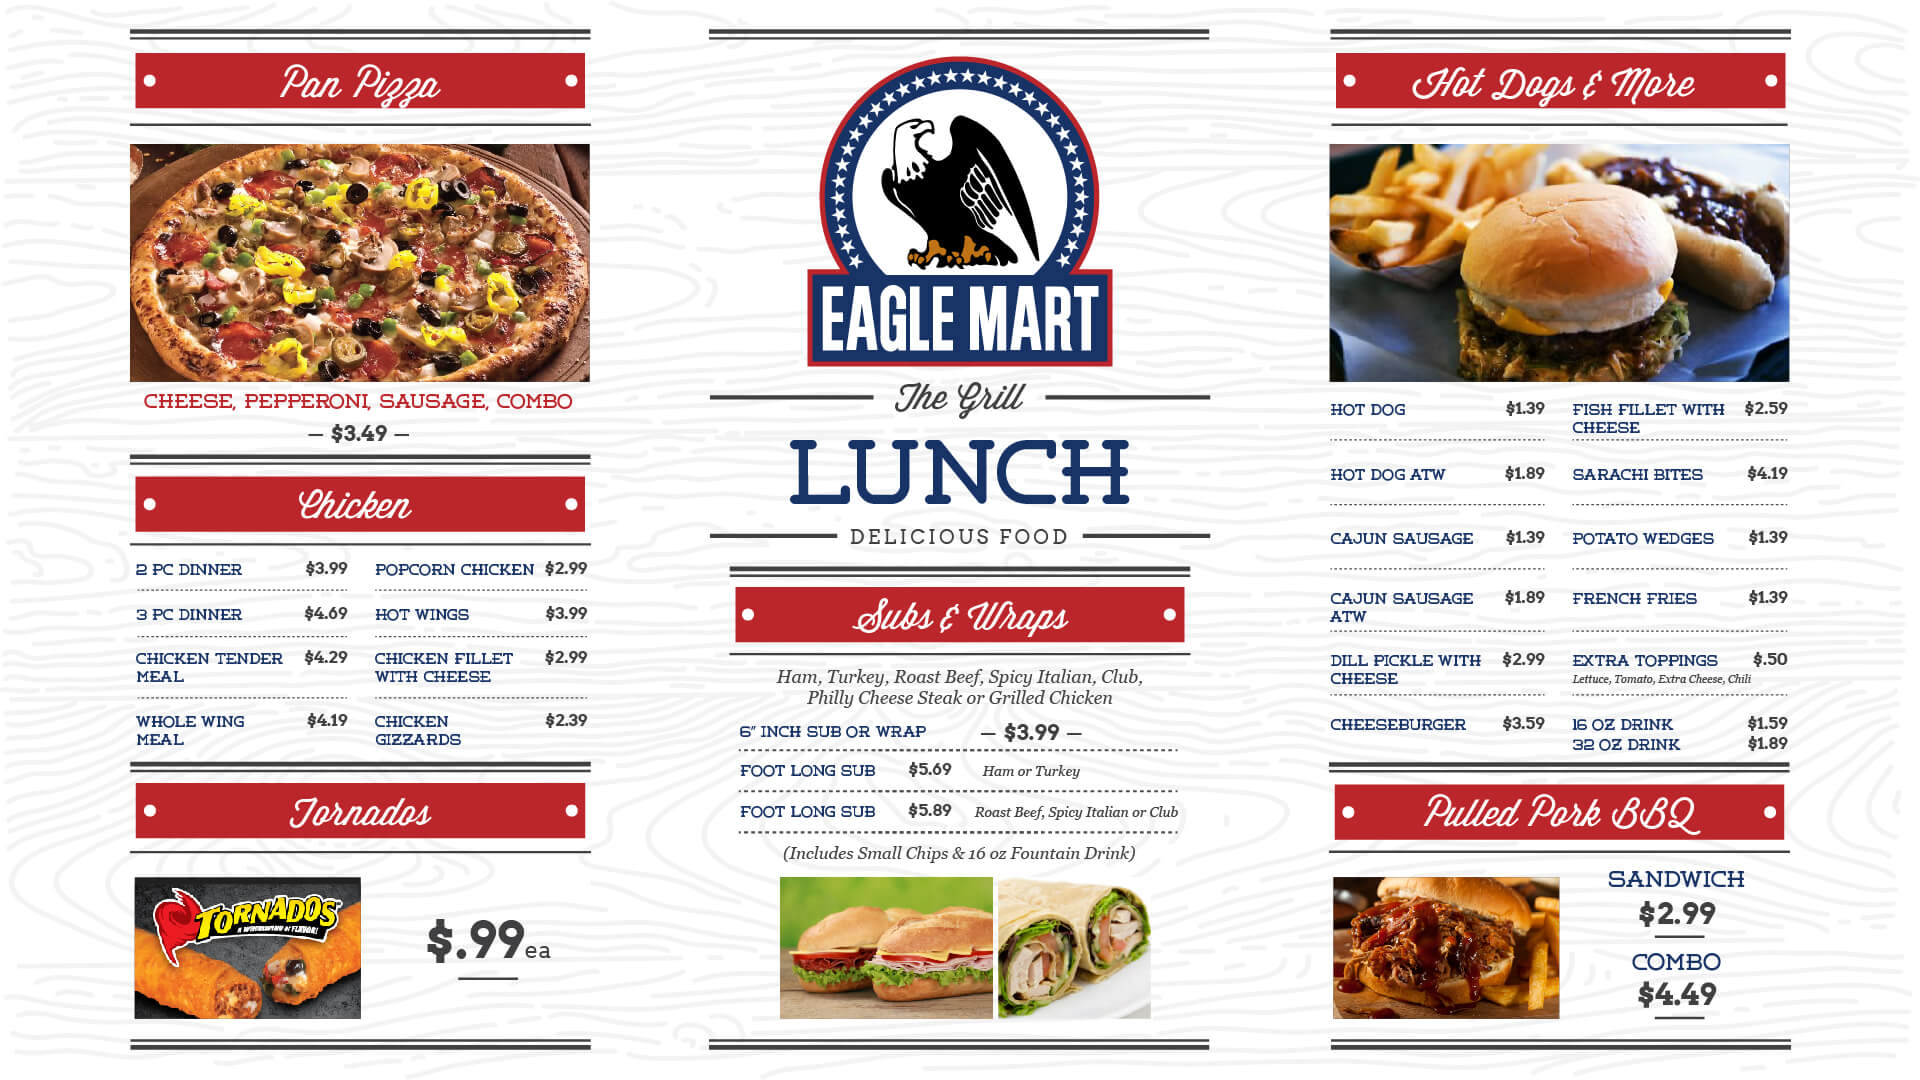 Eagle Mart Lunch Menu